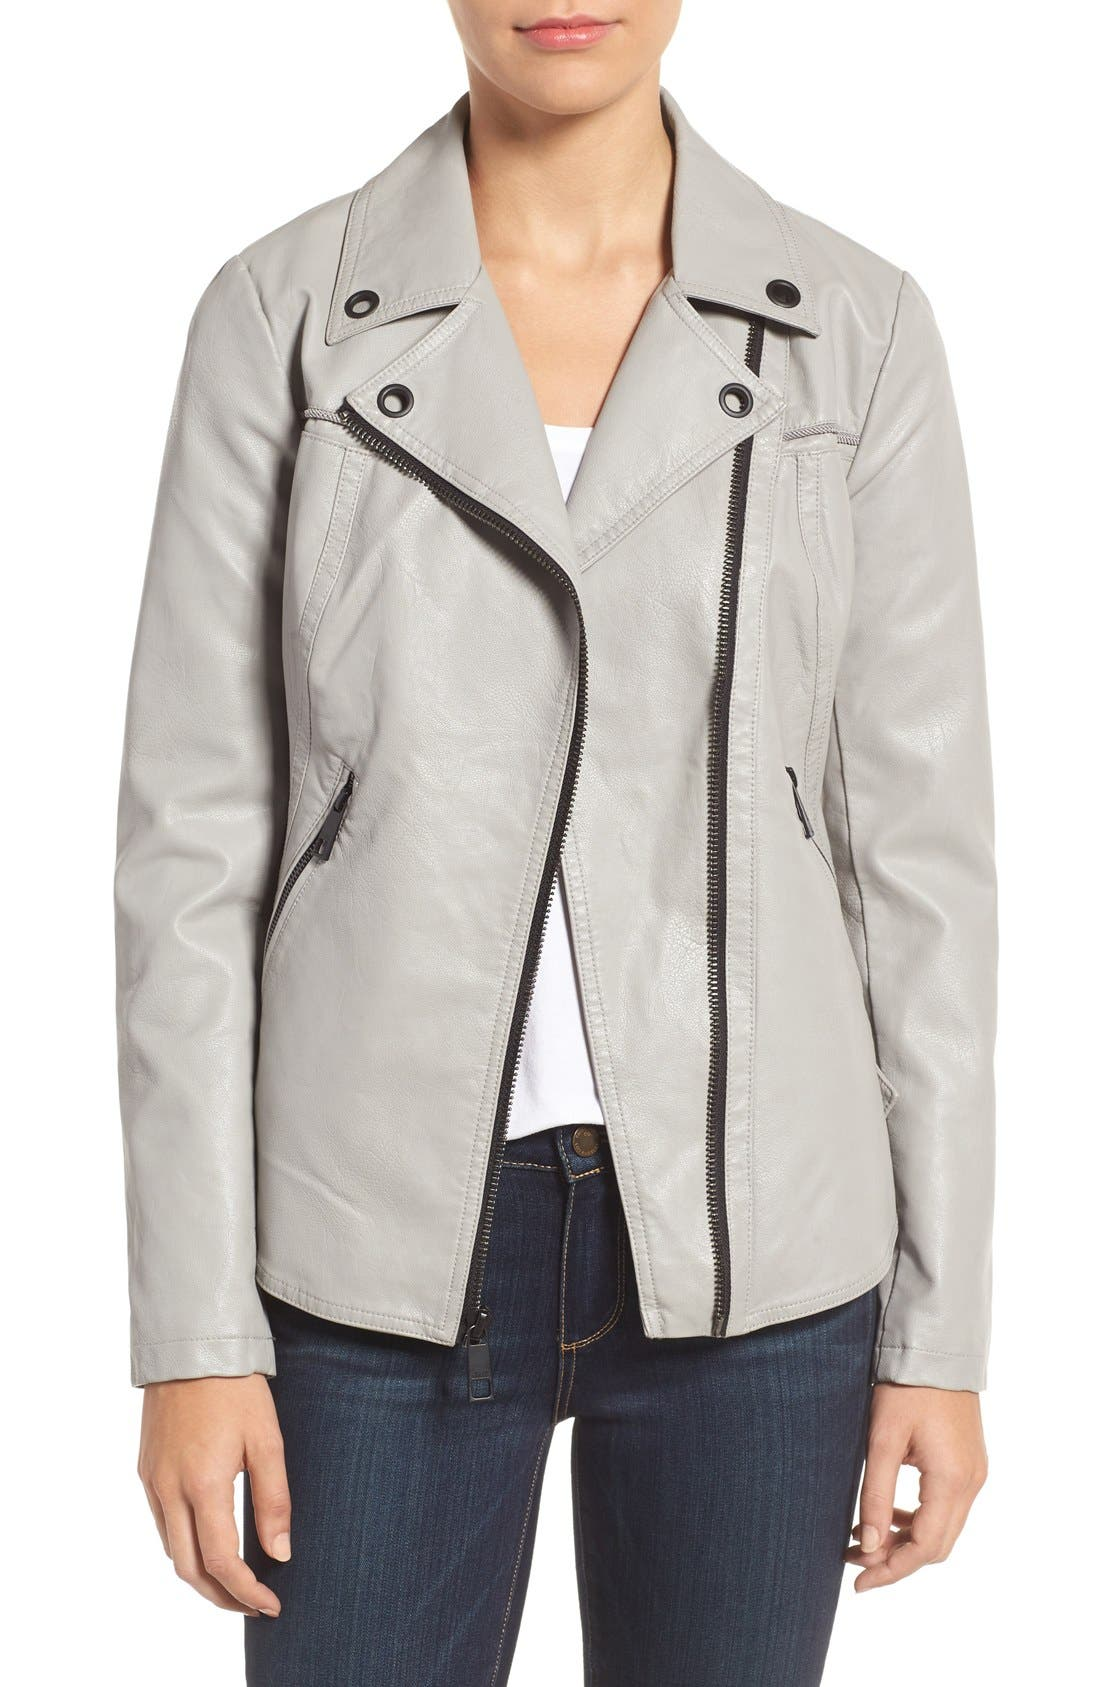 Alternate Image 1 Selected - GUESS Faux Leather Moto Jacket